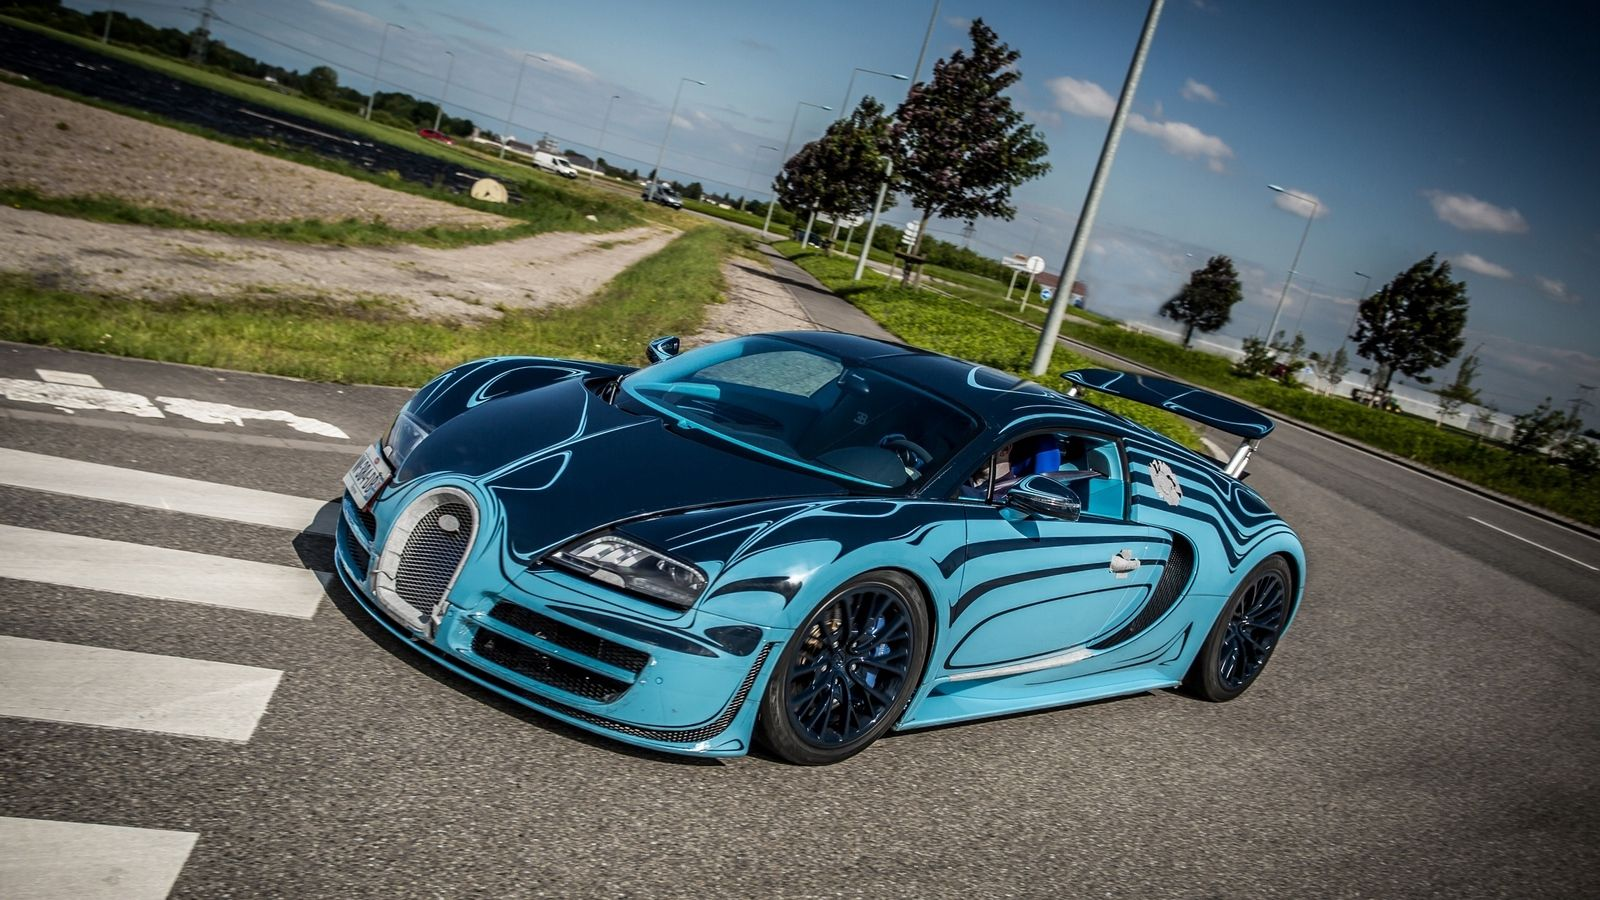 Blue Bugatti Veyron Super Sport Wallpaper: Blue Bugatti Veyron Wallpapers